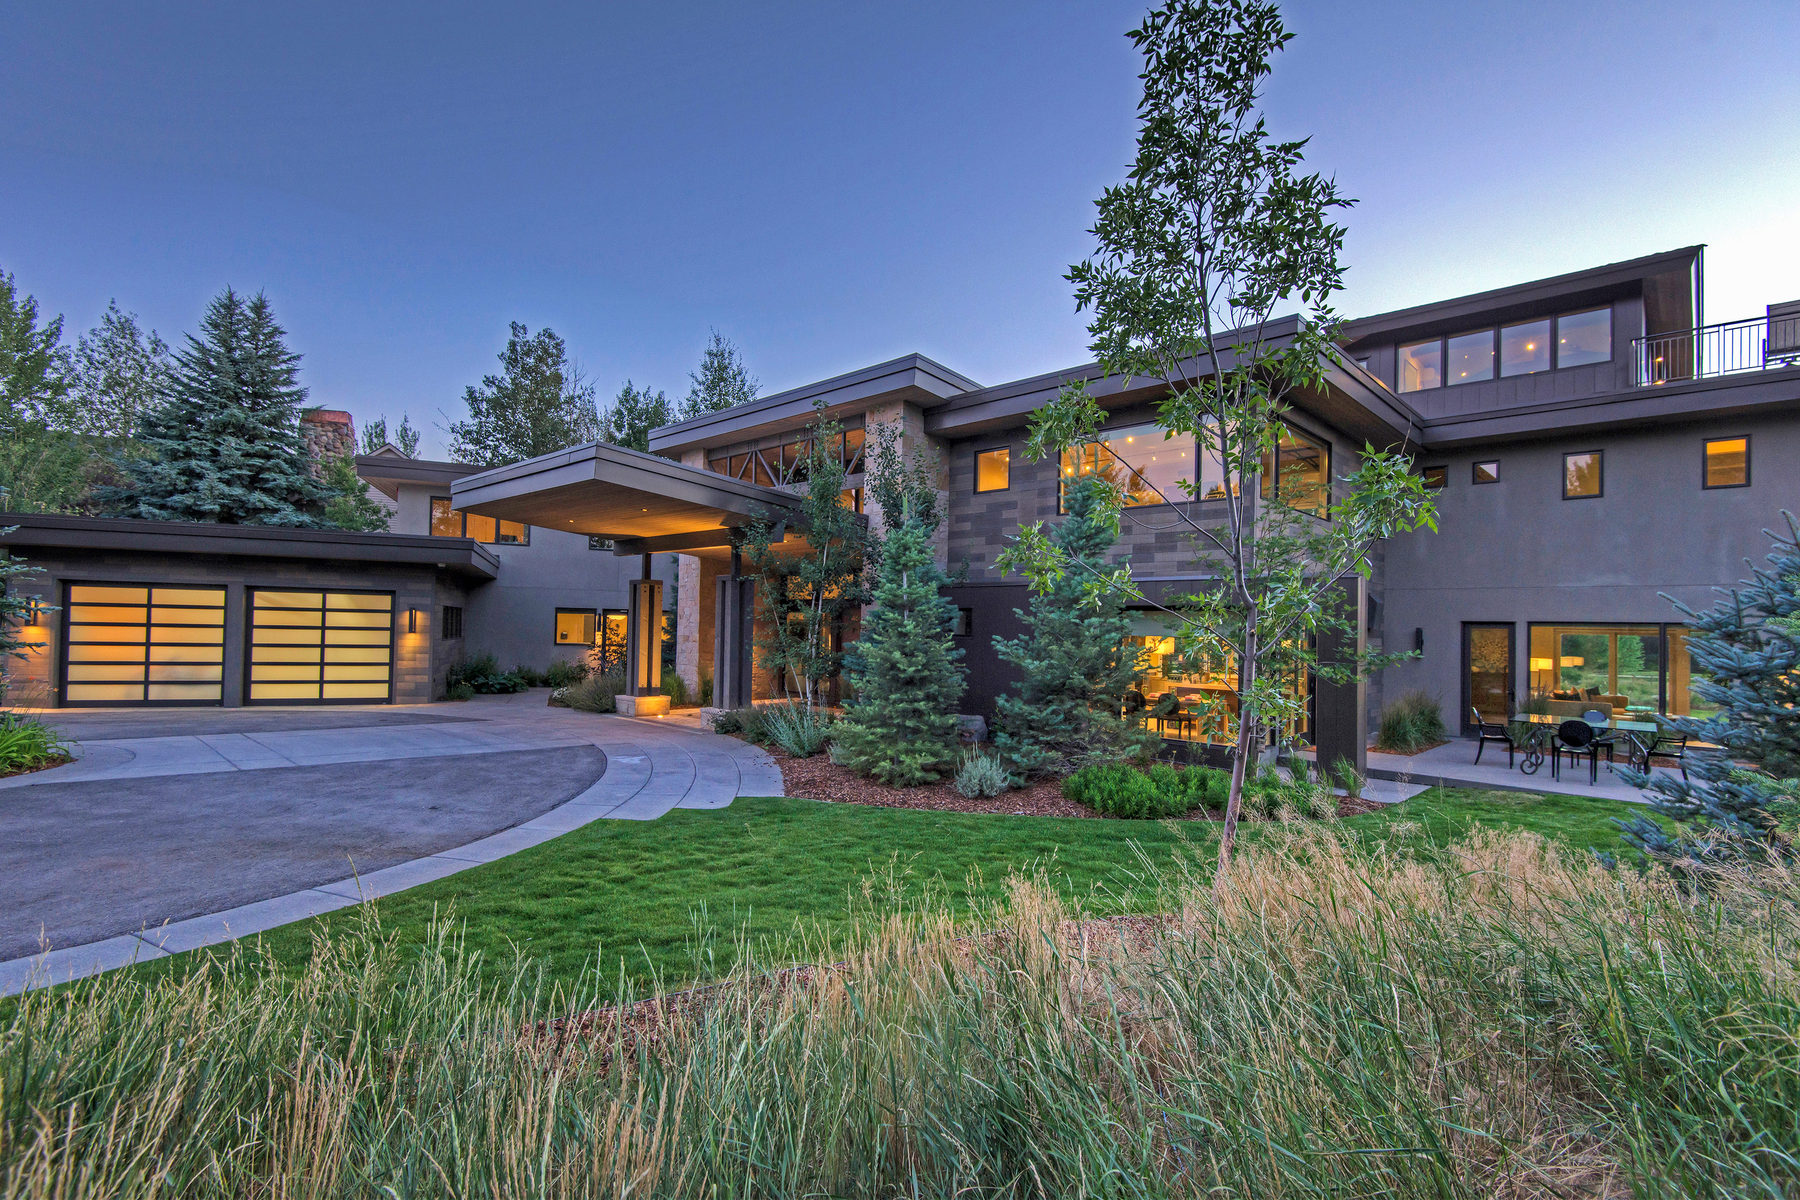 Single Family Home for Sale at Exquisite Contemporary Estate 1334 Lucky John Dr Park City, Utah 84060 United States